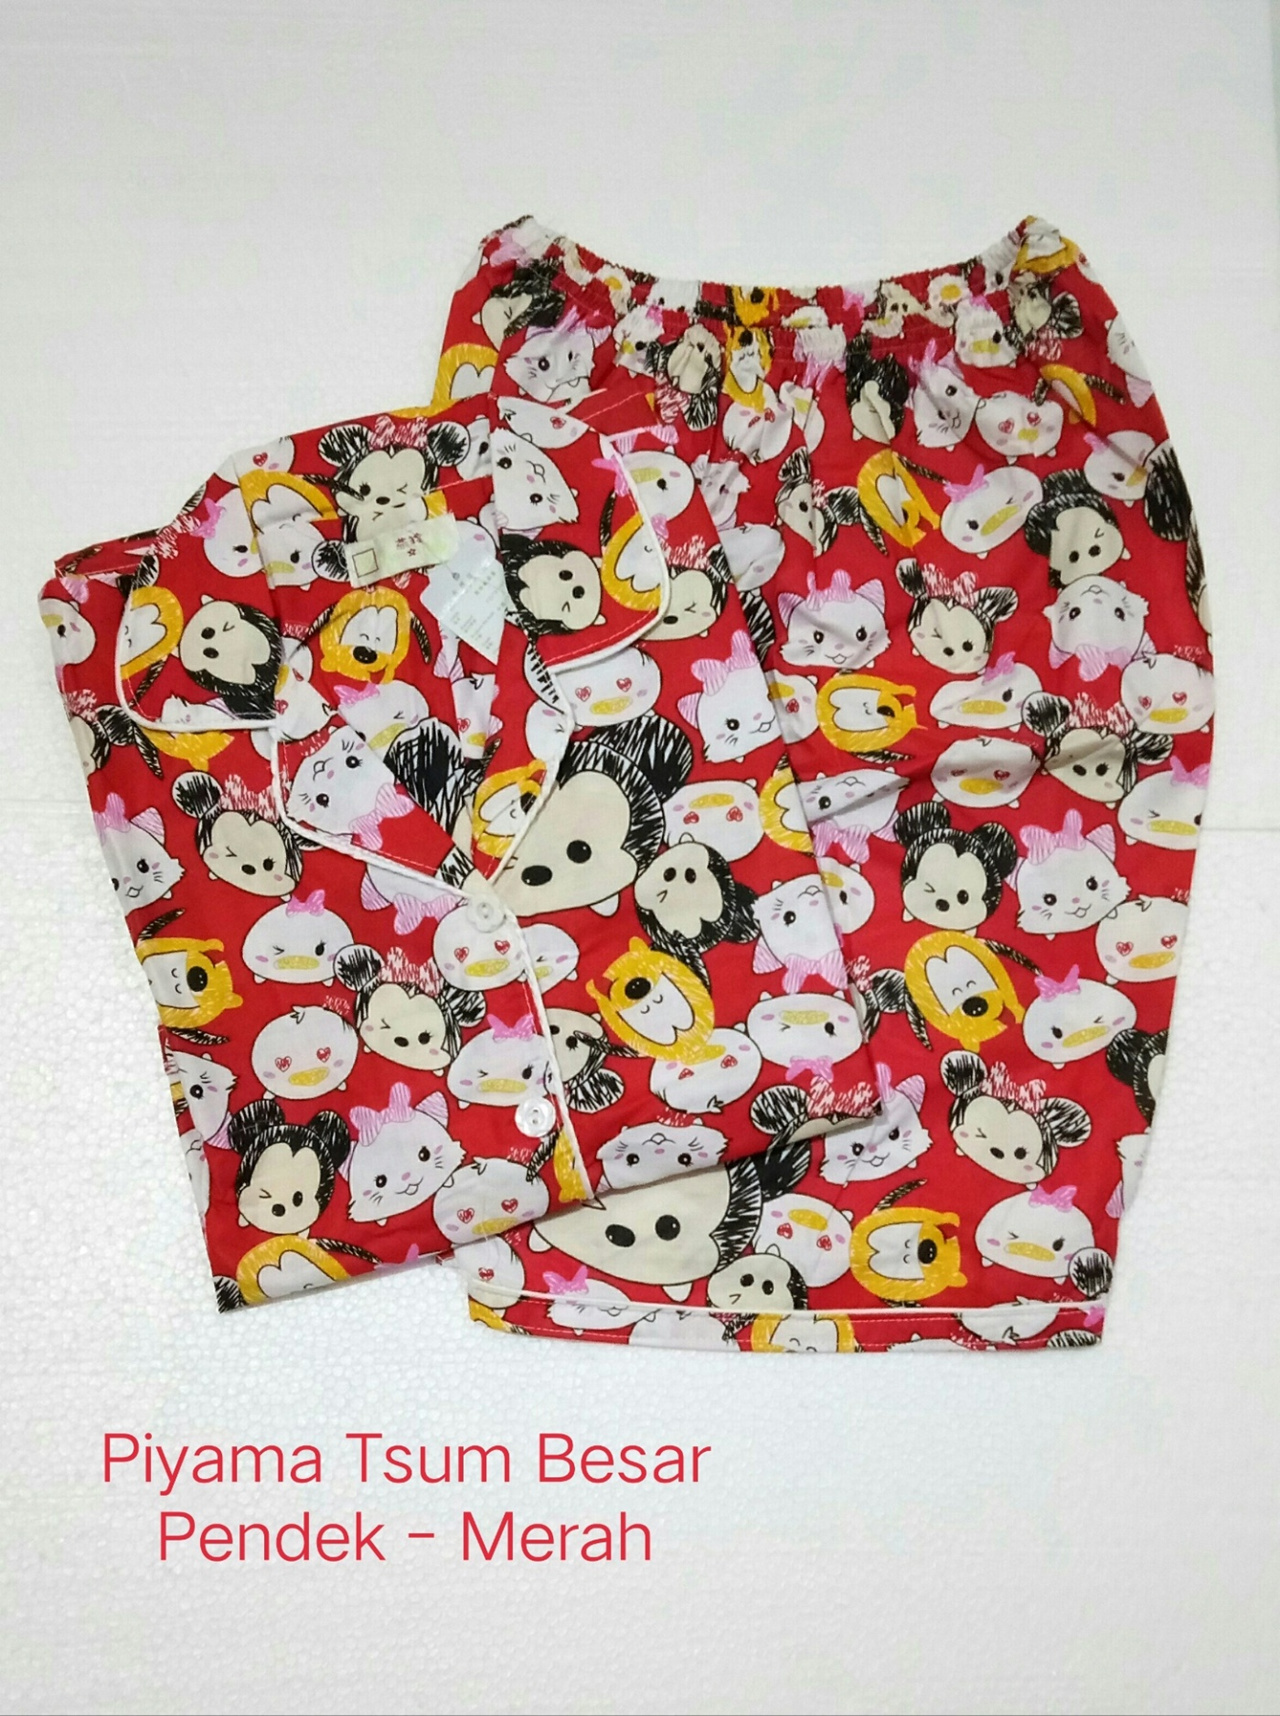 Fortune Fashion Piyama Tsum Besar Pendek Bahan Katun Jepang Fit to XL Ld 104cm. Busui Friendly Celana Pendek Best Quality